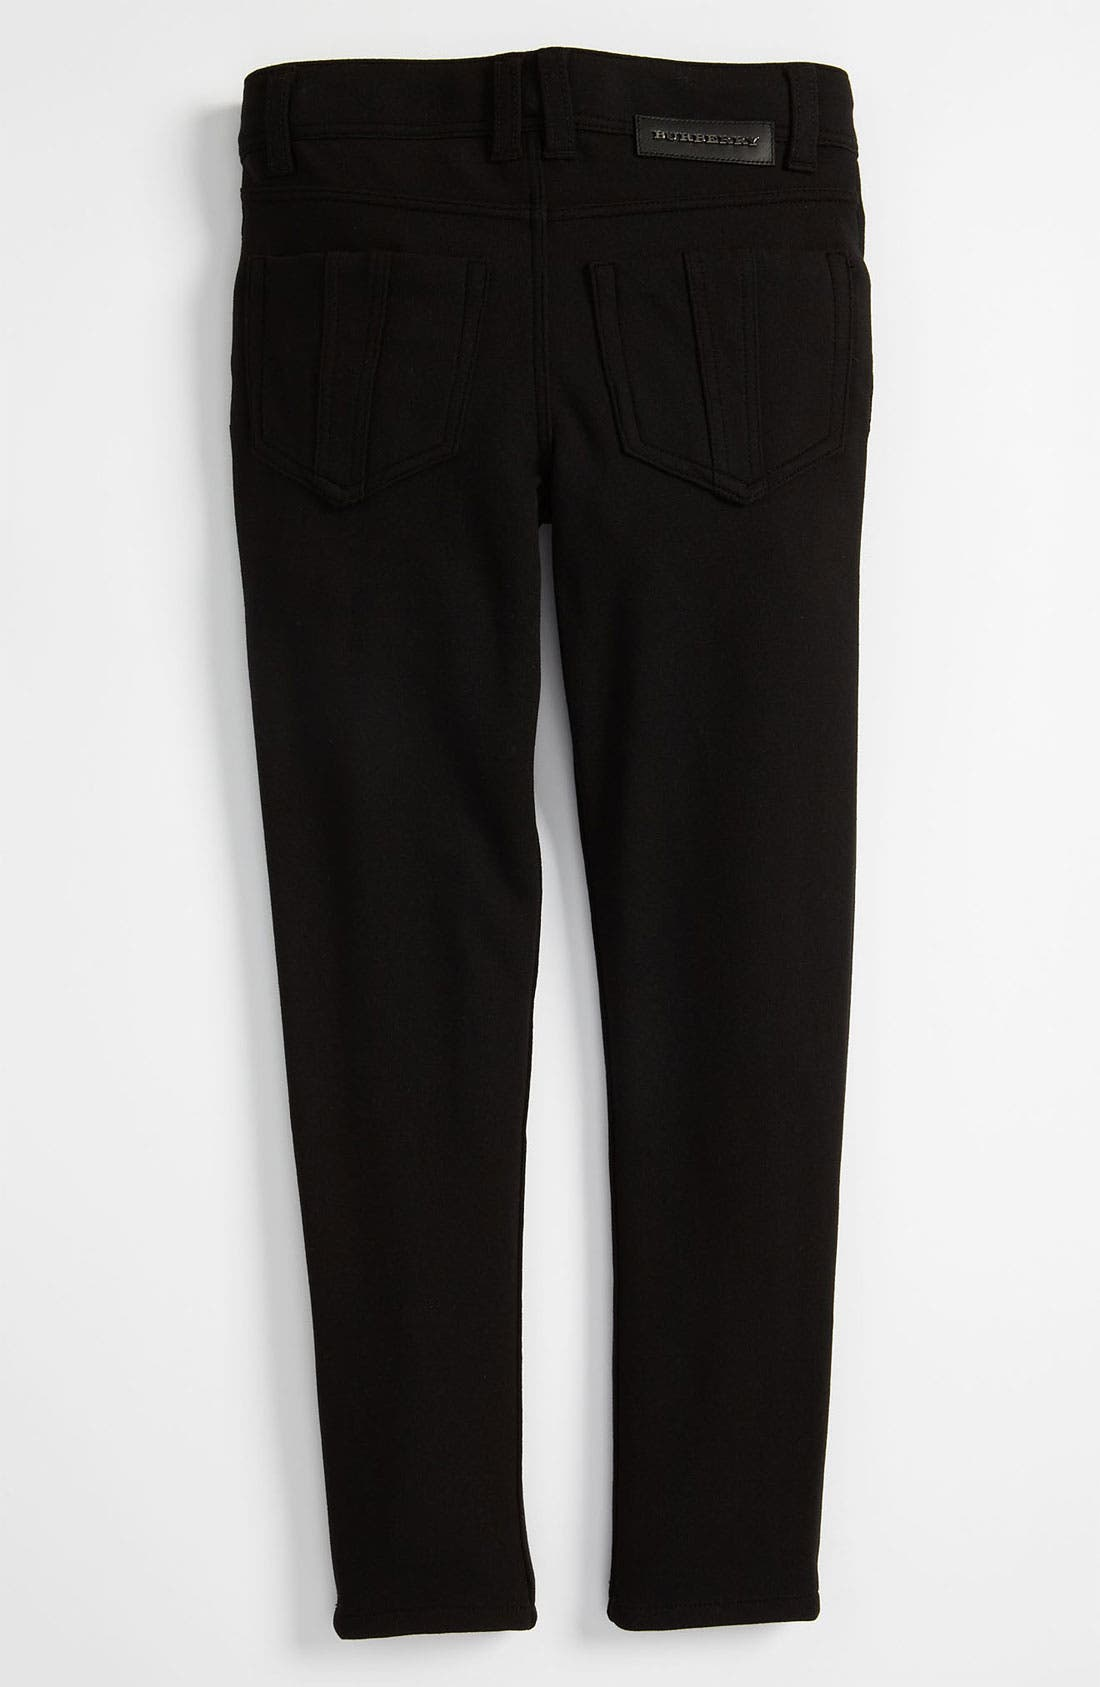 Main Image - Burberry Skinny Ponte Knit Pants (Little Girls)